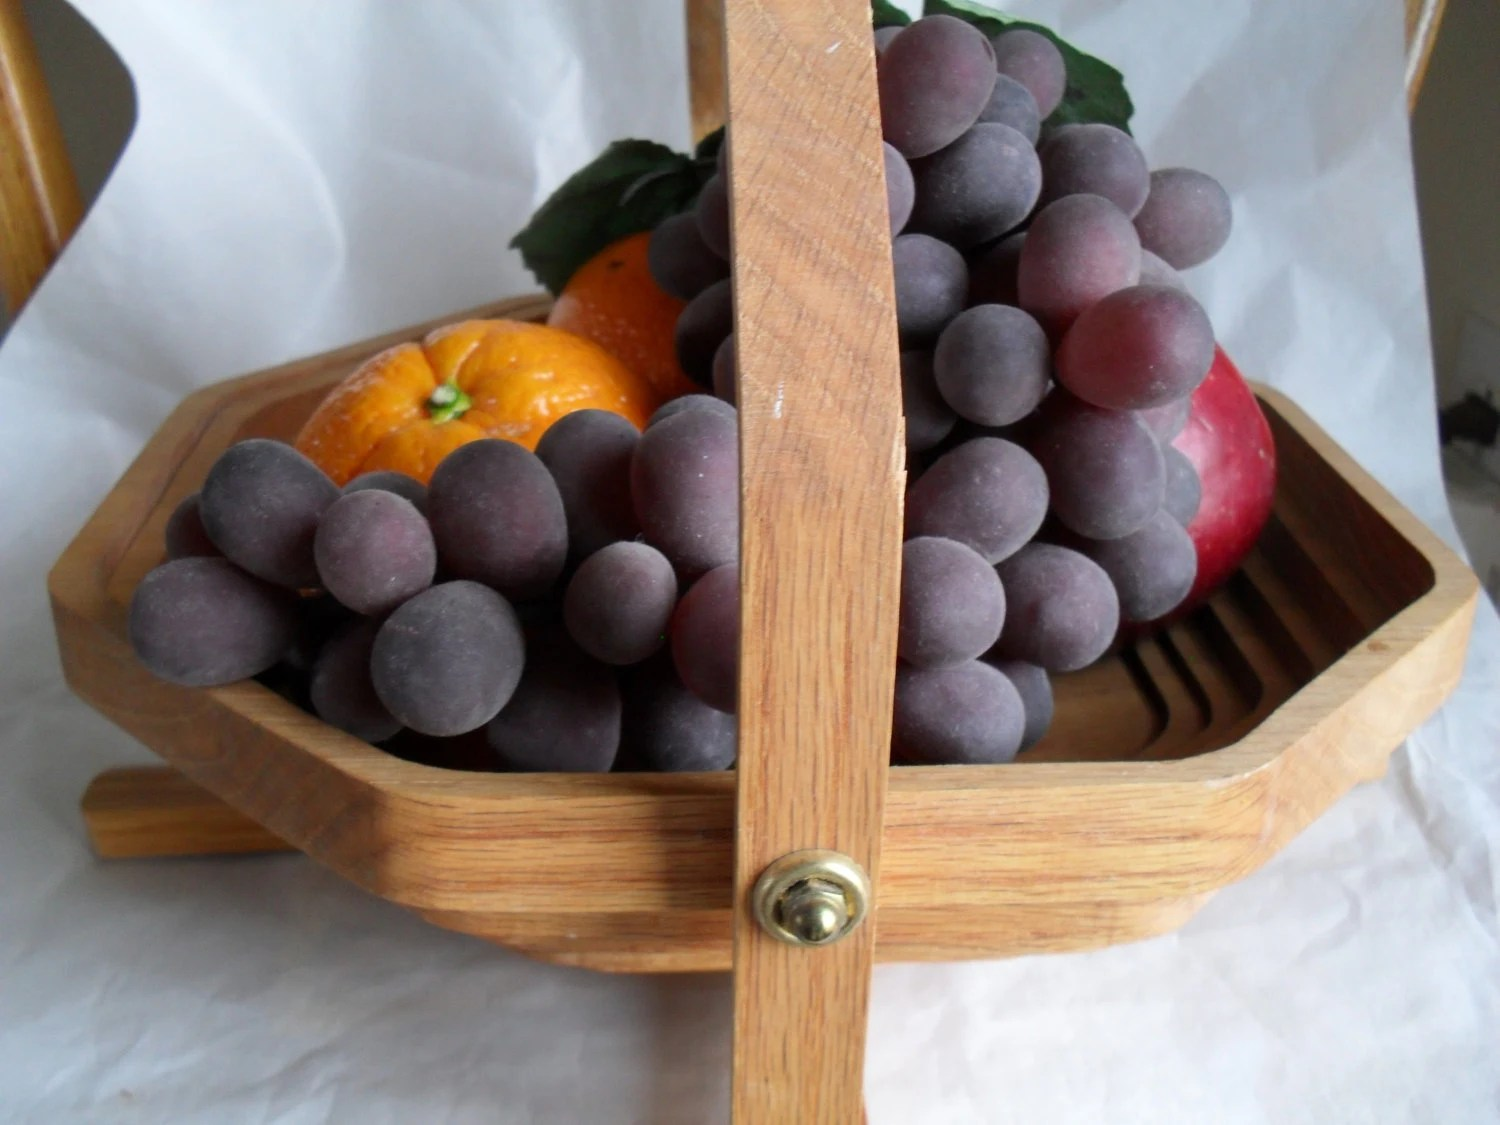 Table Top Fruit Basket Oak Basket Hot Pad Plate Fruit Basket Table Decor